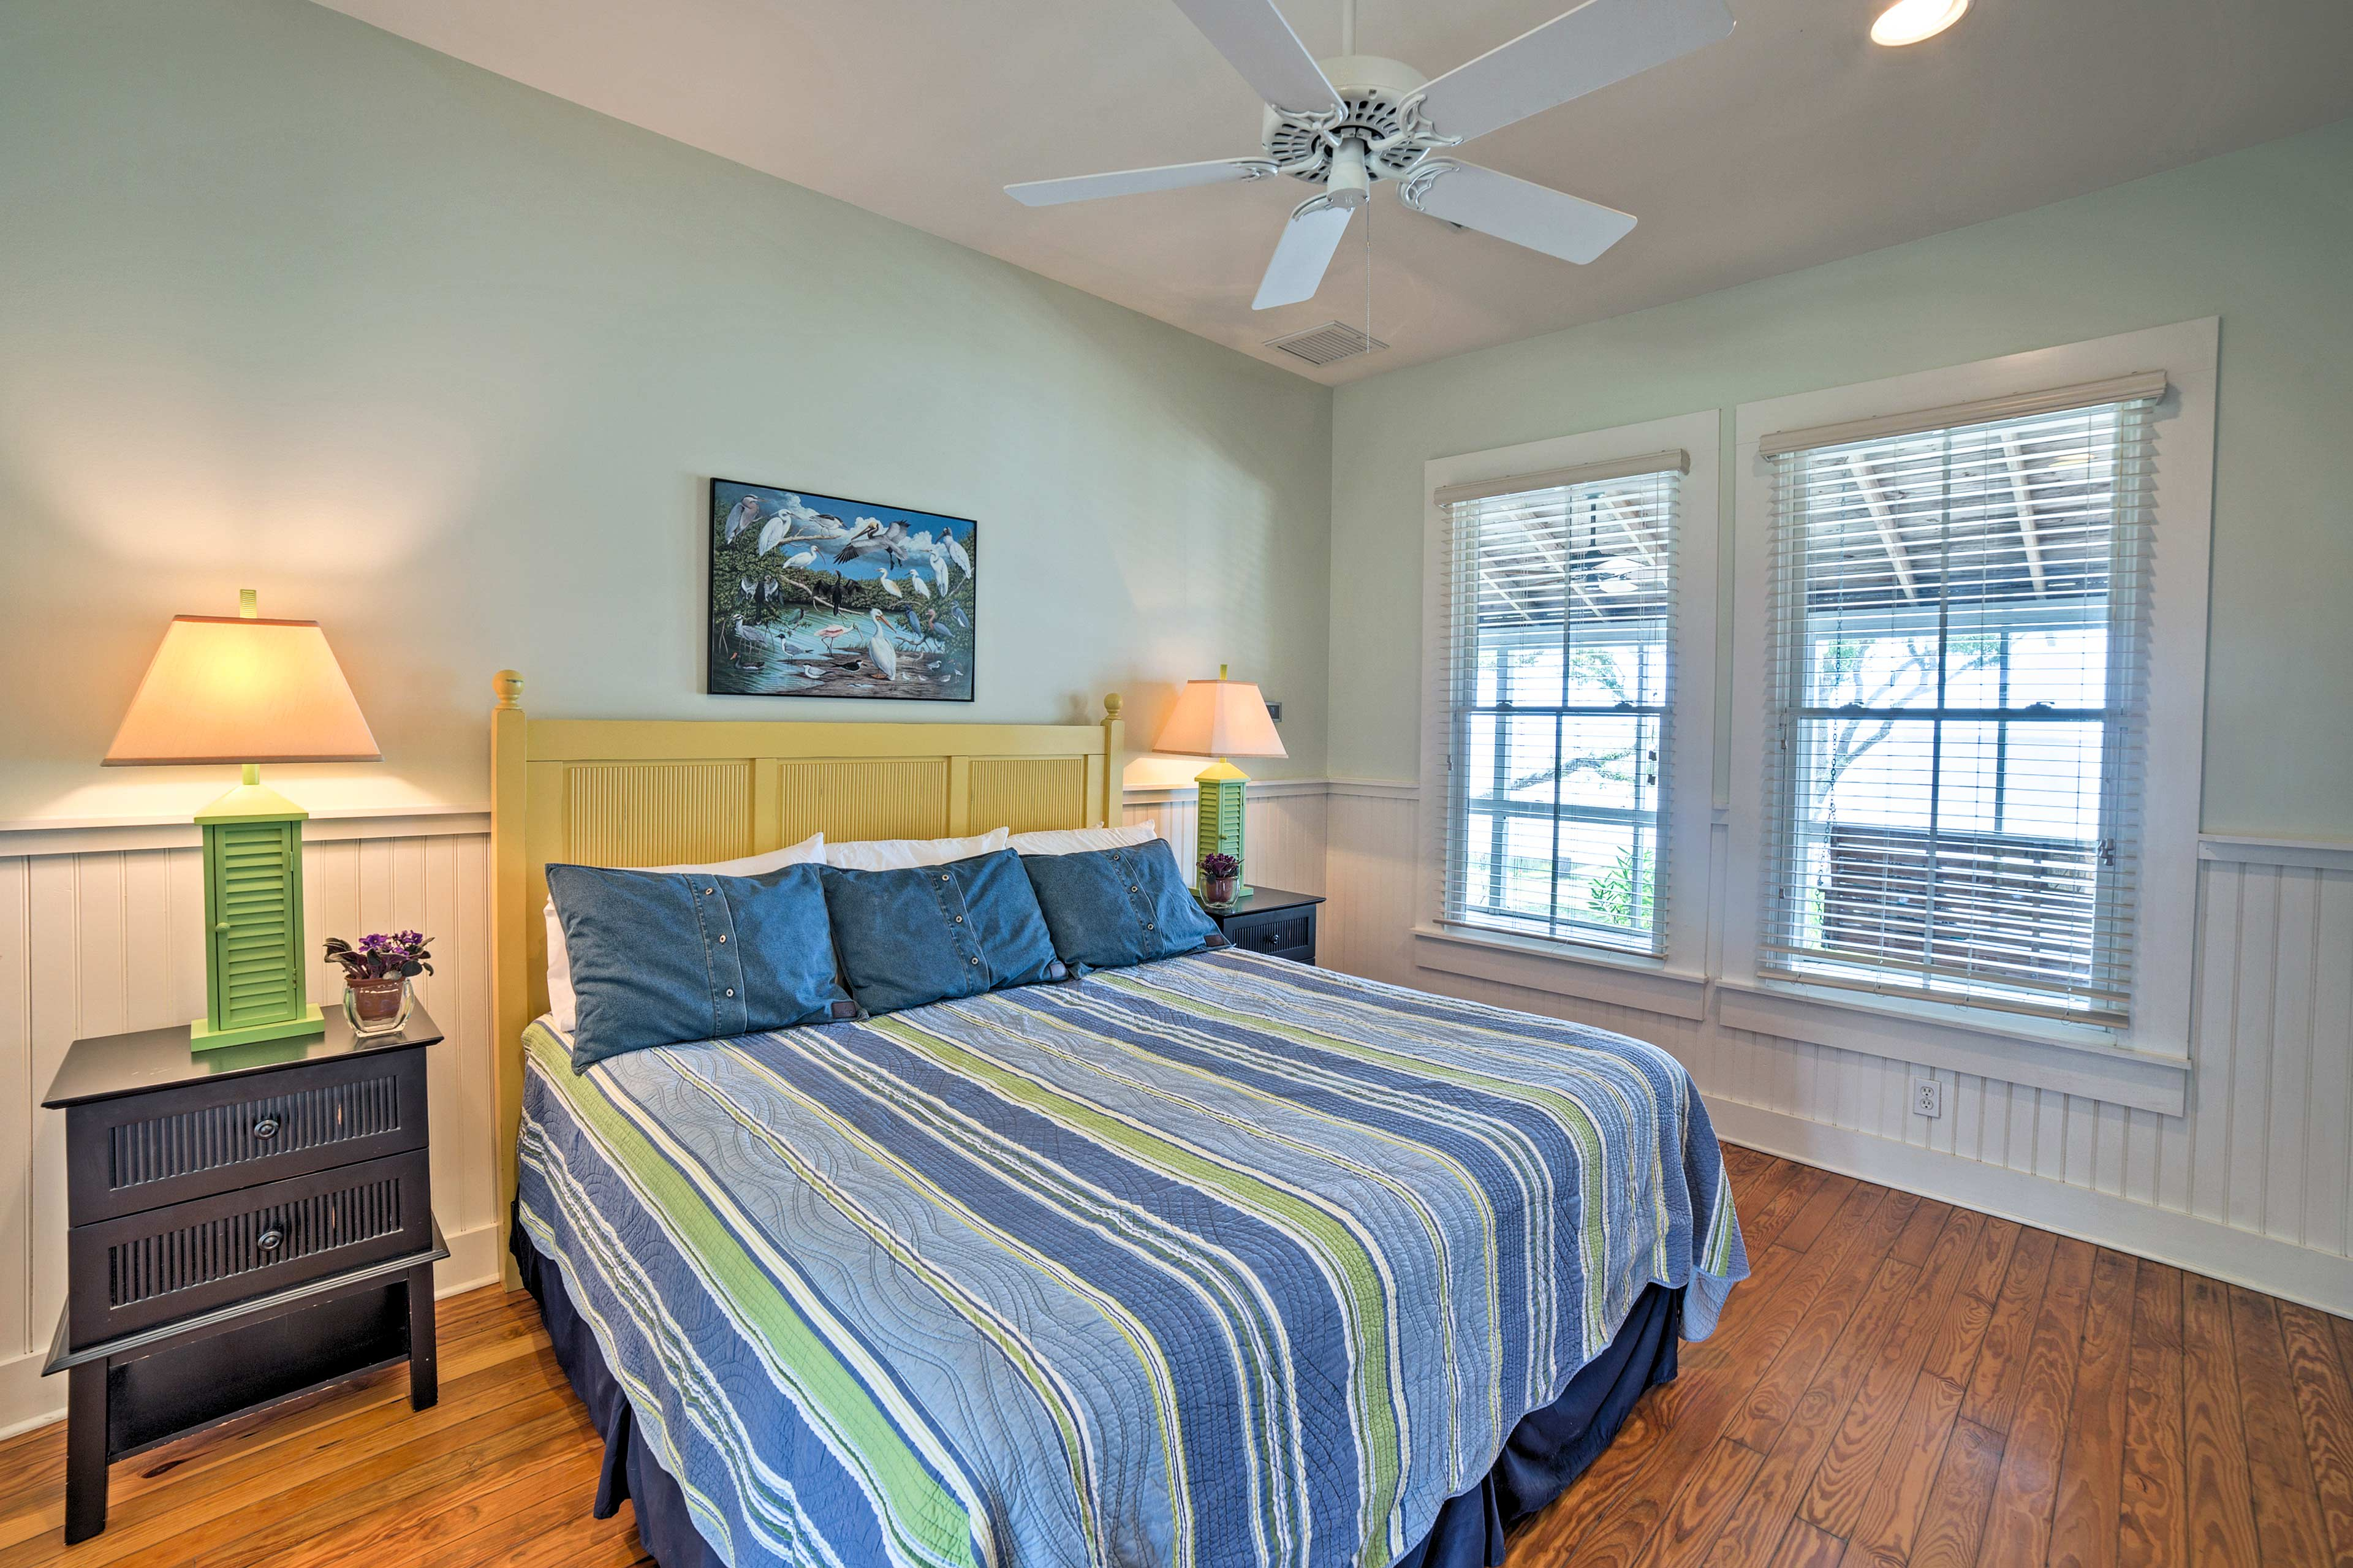 Each bedroom provides access to the screened porch to wake up with bay views.